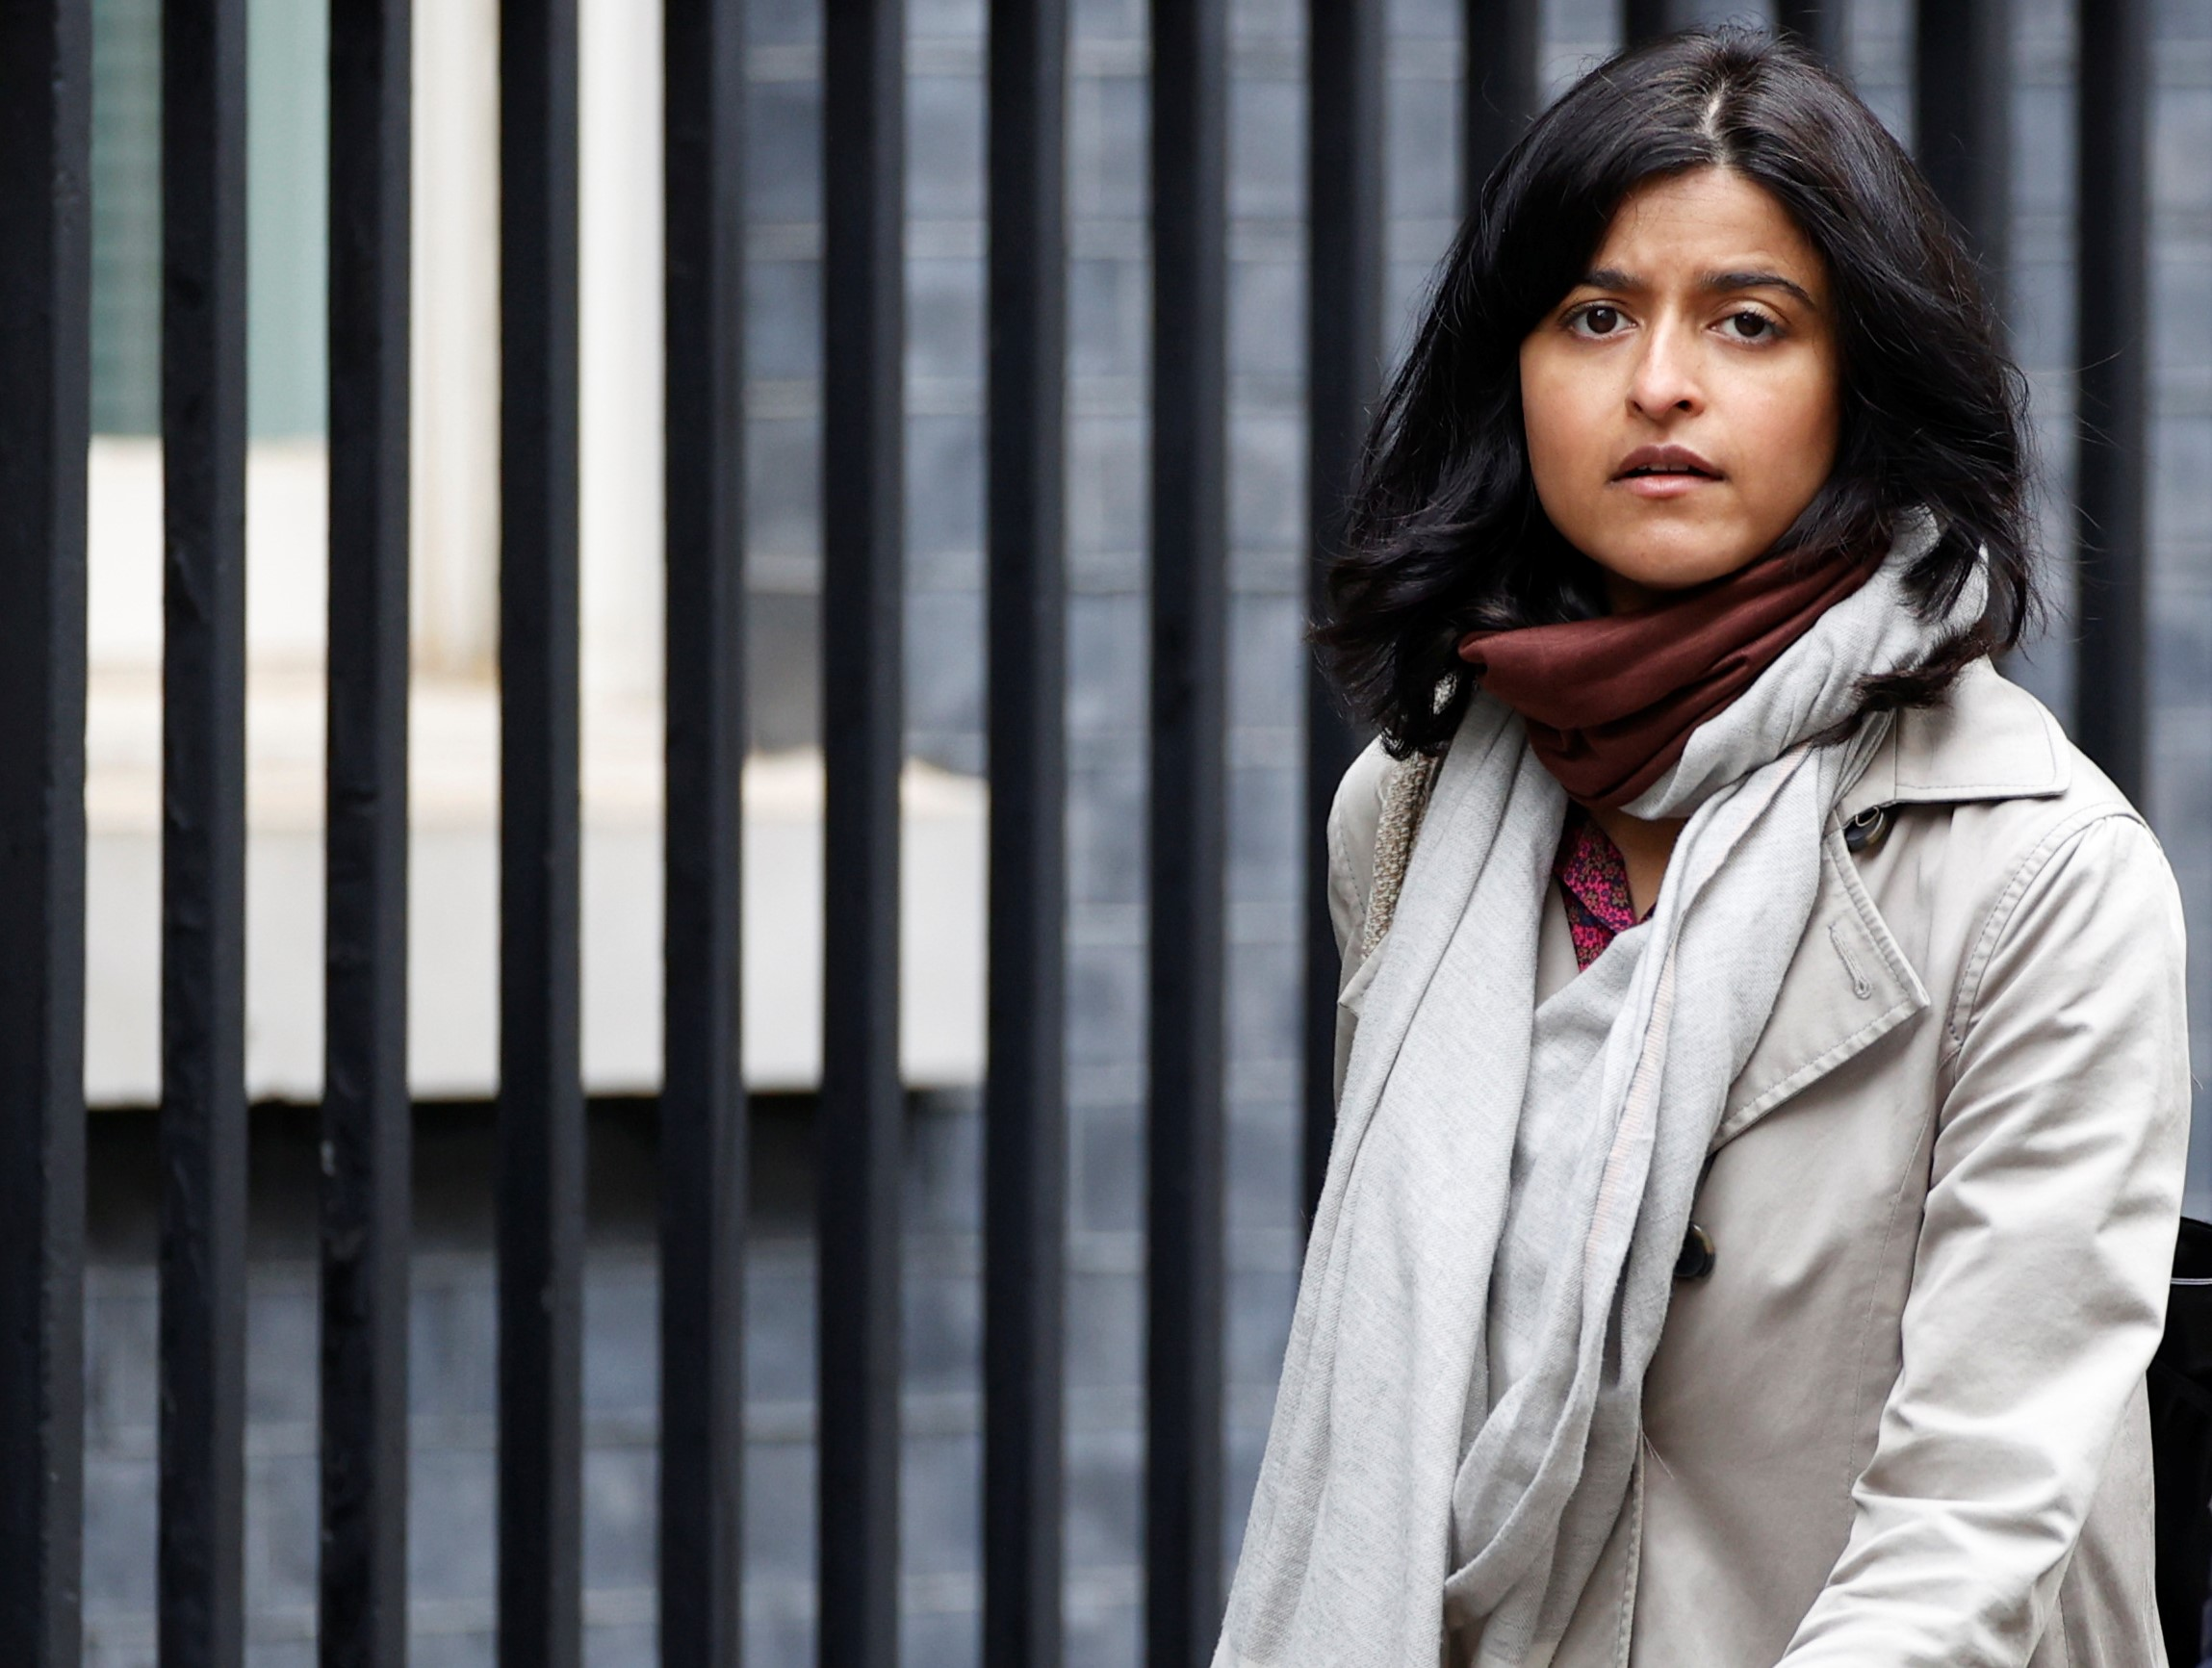 """Critics maintain that Munira Mirza, director of No.10's policy unit, is """"unsuited"""" to lead the commission, as she had criticised past inquiries into institutional racism. (REUTERS/John Sibley)"""